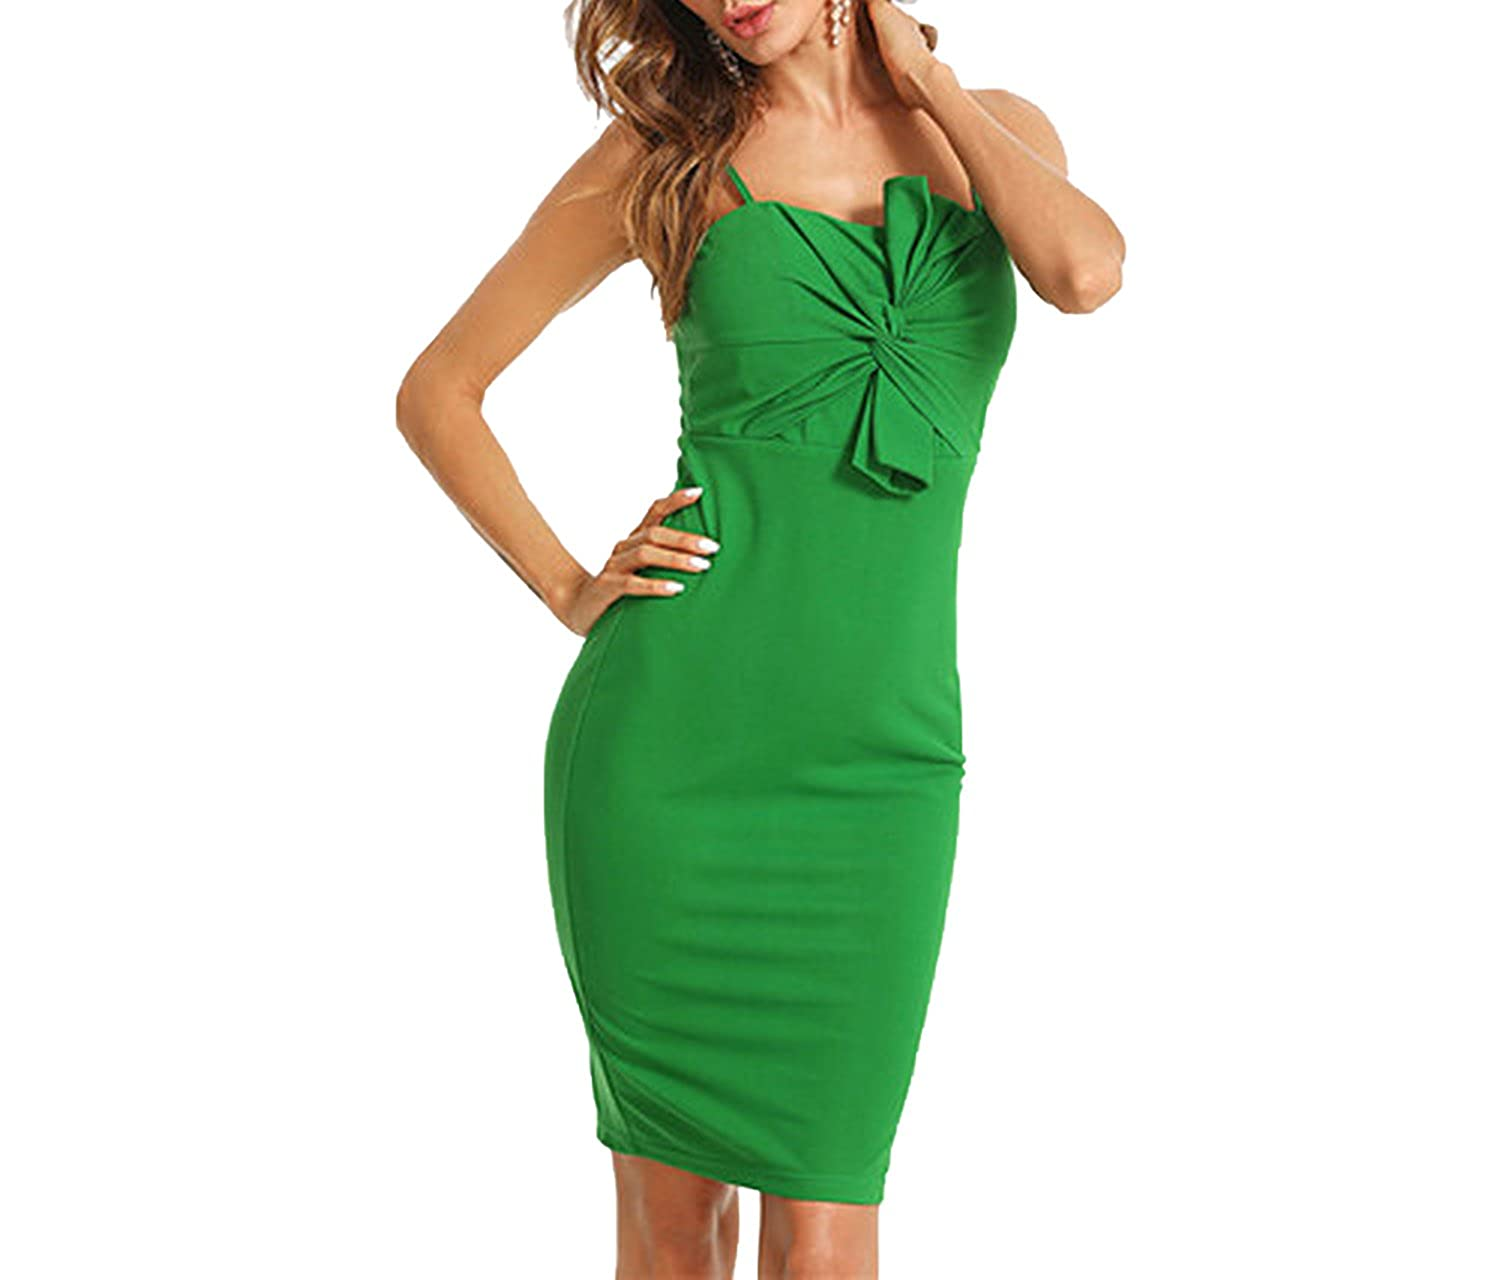 9ee3ed530072 world-palm Twist Front Form Fitting Slit Summer Dress Green Sleeveless Party  Dress Knot Dress at Amazon Women s Clothing store